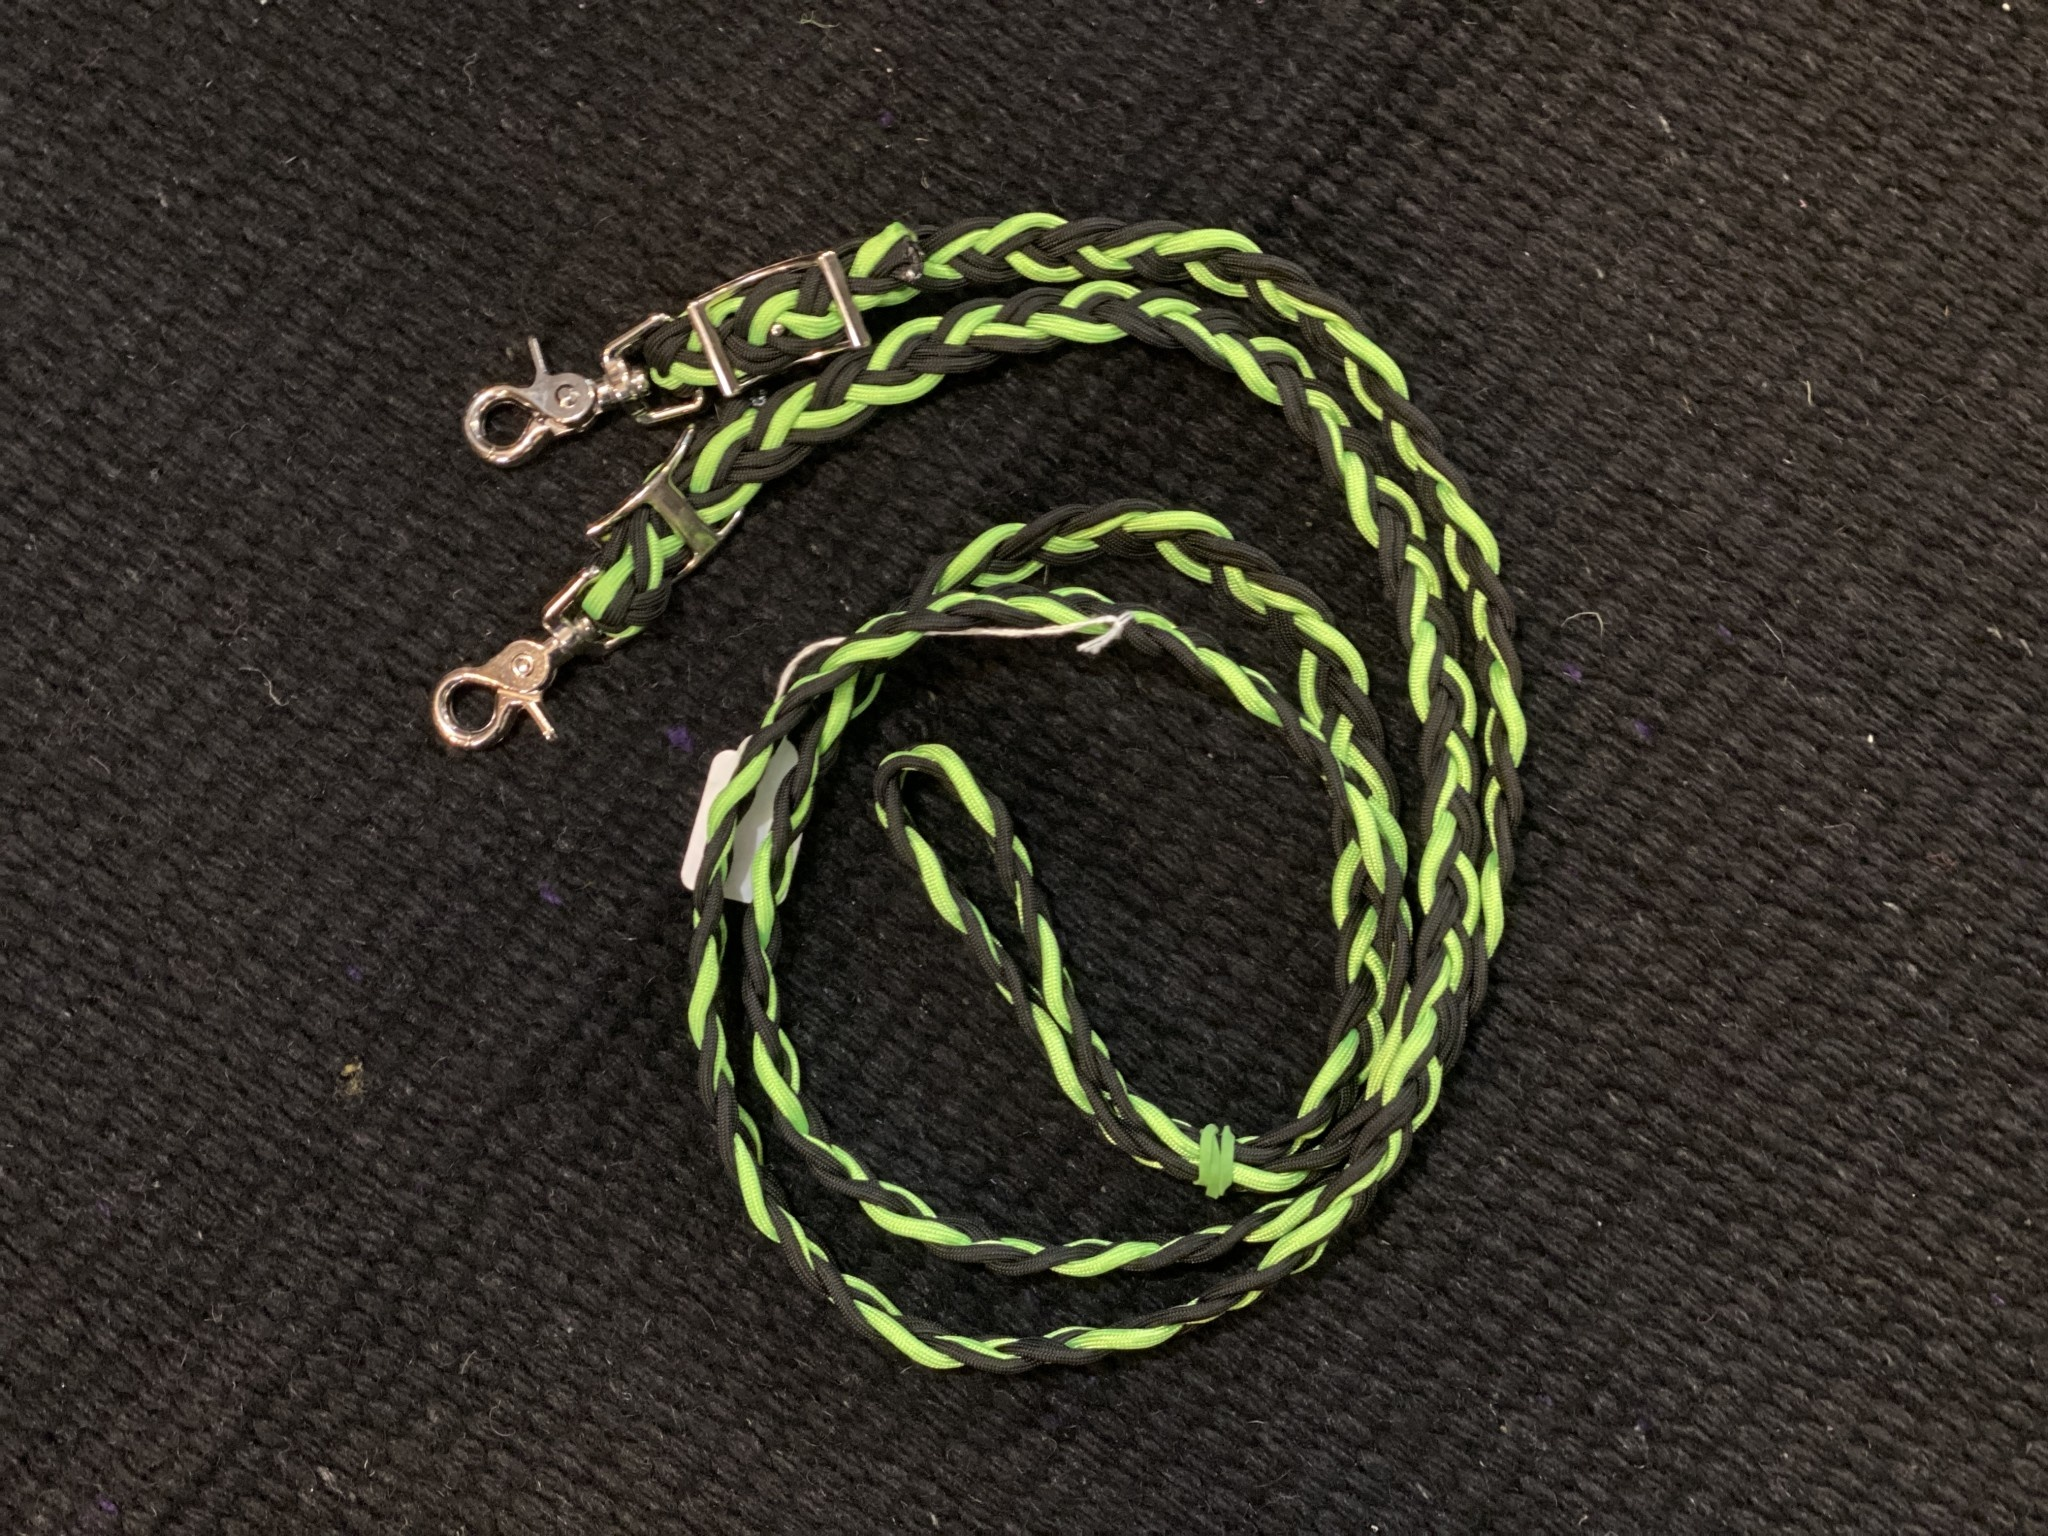 Braided Paracord Game Rein - Assorted Colors